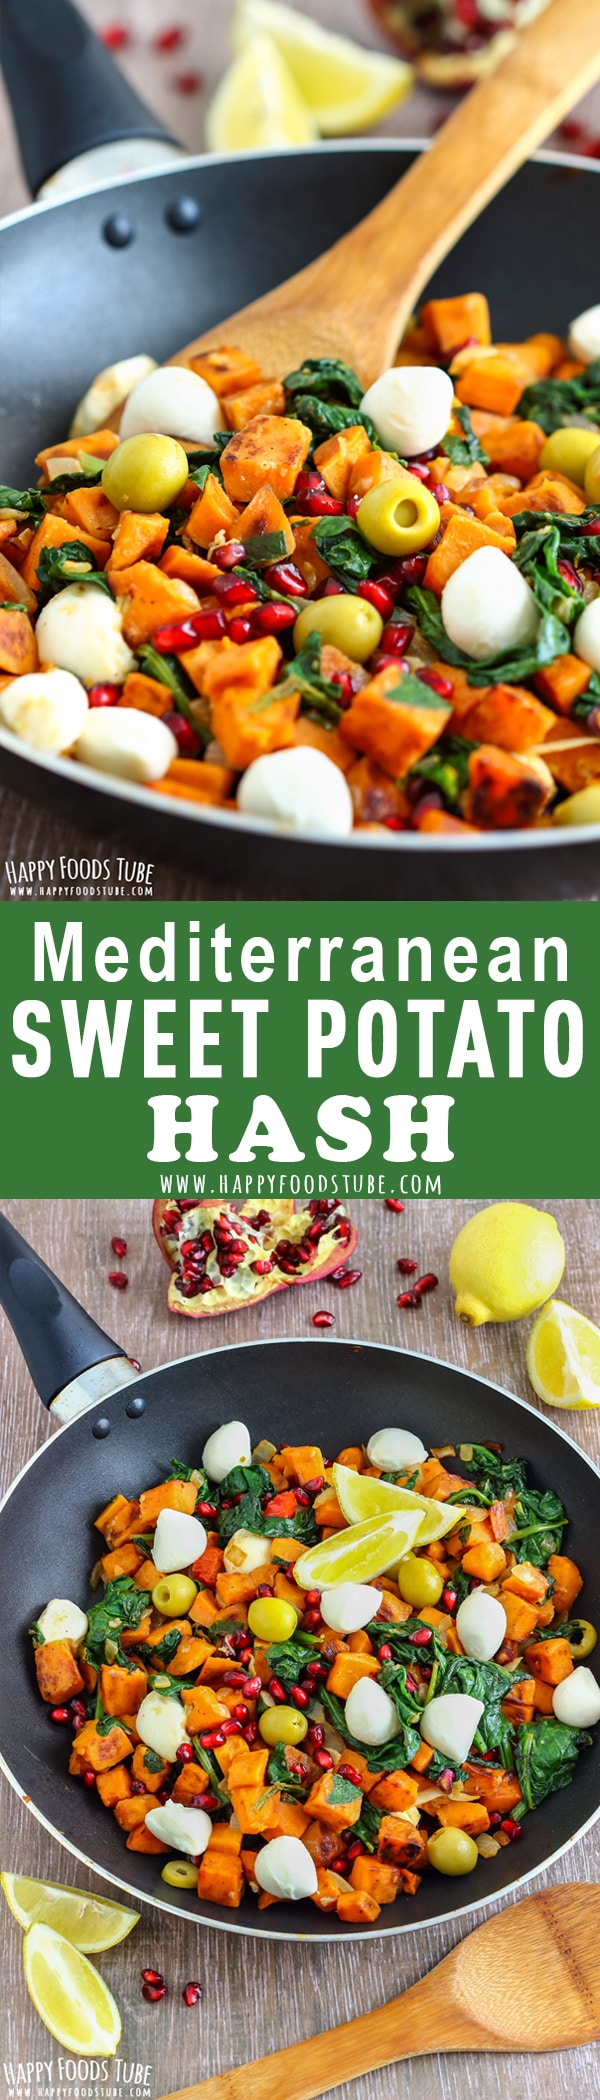 This Mediterranean Sweet Potato Hash is bursting with Mediterranean flavors. Easy one-pan meal with pomegranate, mozzarella, spinach and olives! Perfect for breakfast, lunch, brunch, breakfast for dinner. #sweetpotato #potatohash #breakfasthash